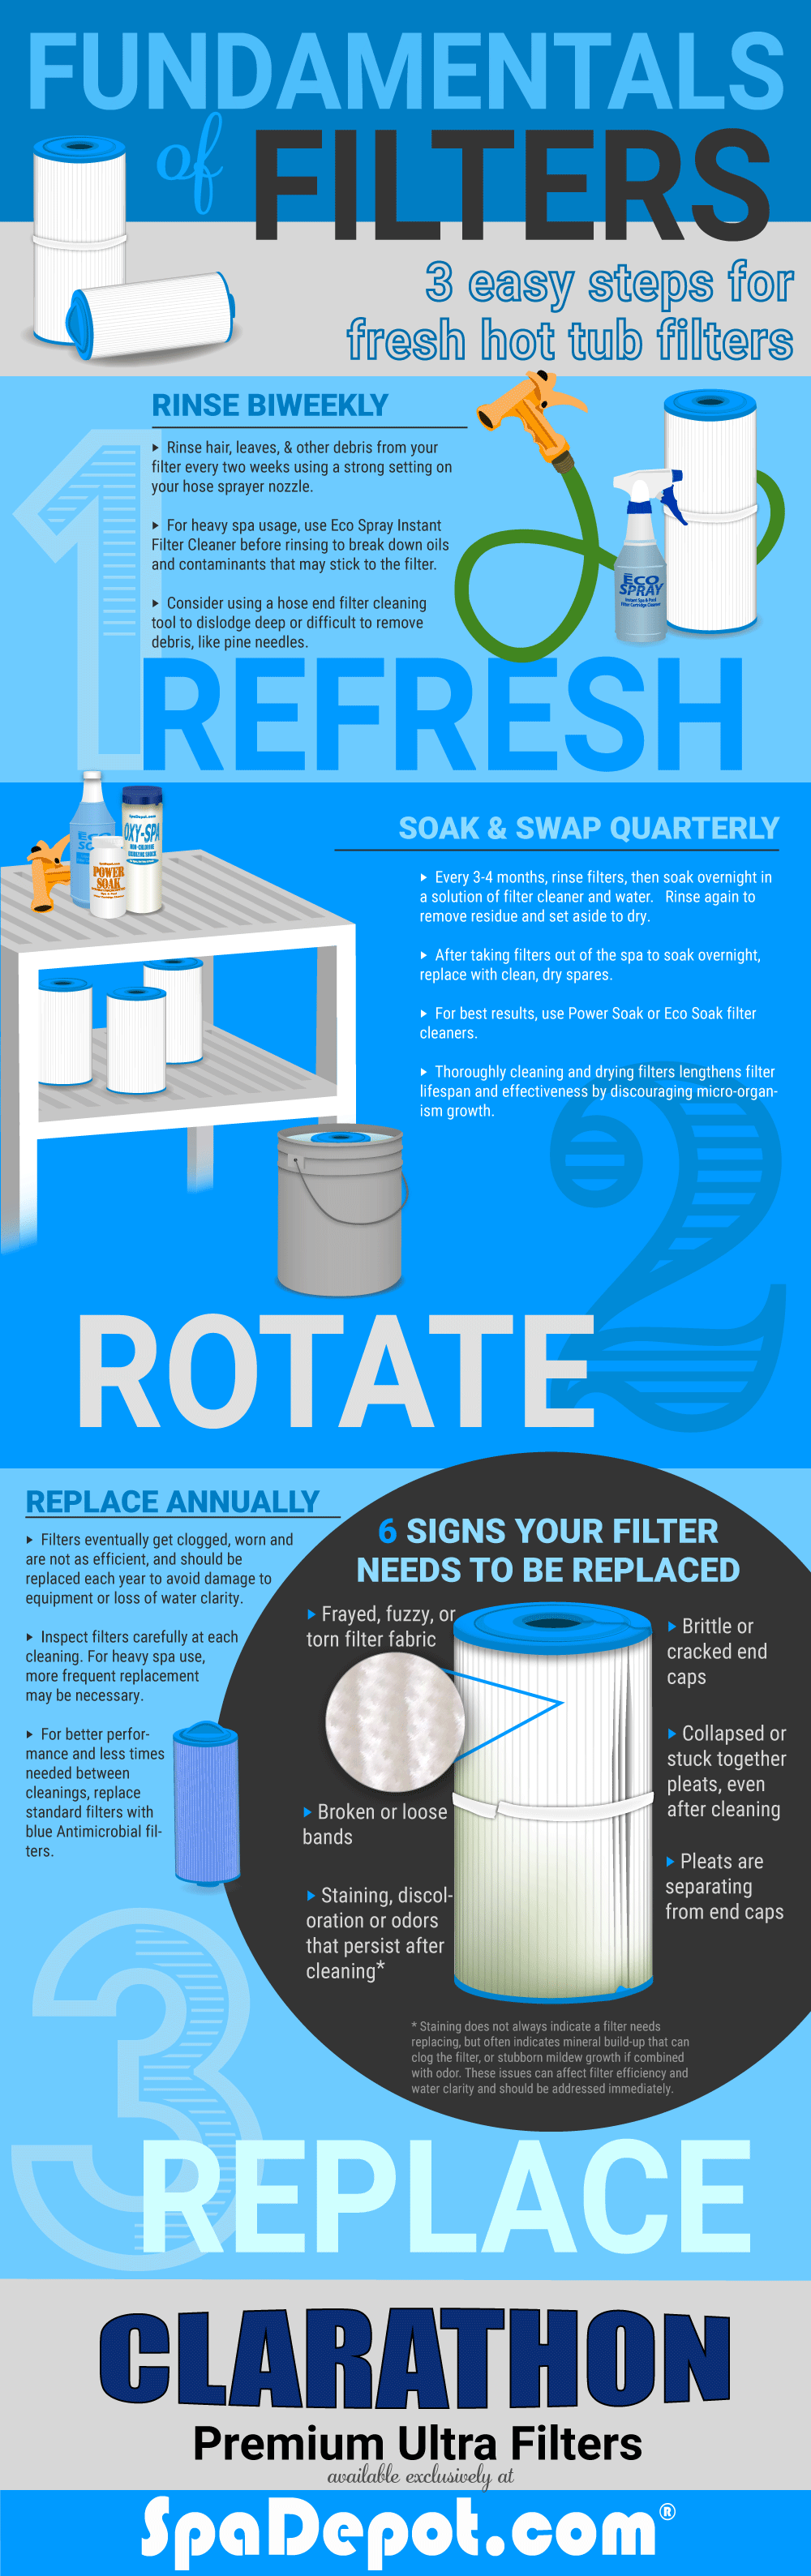 Learn the Fundamentals of Filters with SpaDepot.com & Clarathon ...